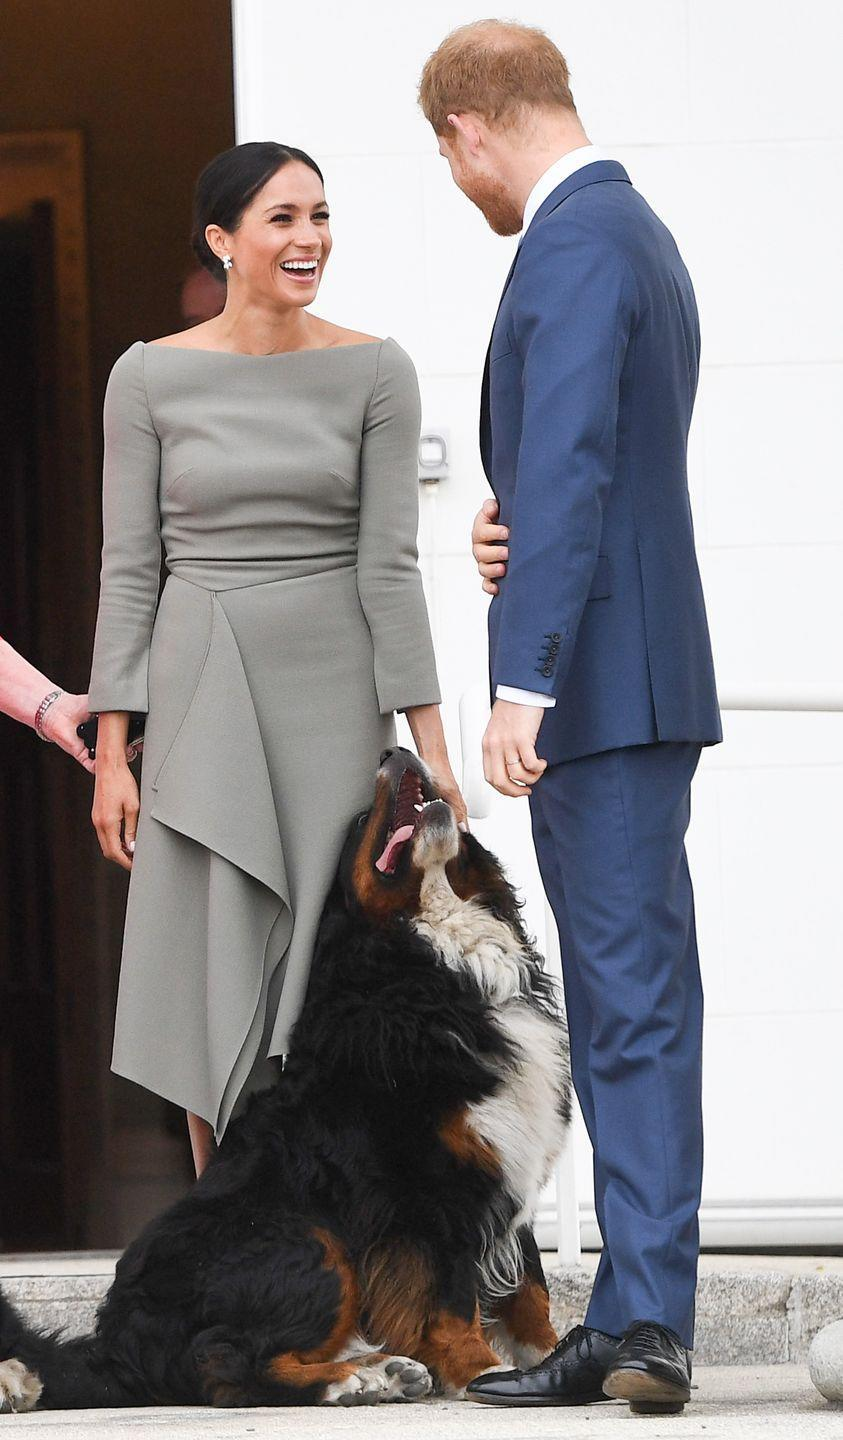 """<p>During their trip to Ireland in July 2018, the couple made 'friends' with the Irish President's dog. No wonder they welcomed a <a href=""""https://www.elle.com/uk/life-and-culture/a22847191/prince-harry-meghan-markle-adopt-labrador-retriever/"""" rel=""""nofollow noopener"""" target=""""_blank"""" data-ylk=""""slk:new Labrador Retriever called Oz"""" class=""""link rapid-noclick-resp"""">new Labrador Retriever called Oz</a> to their family! </p>"""